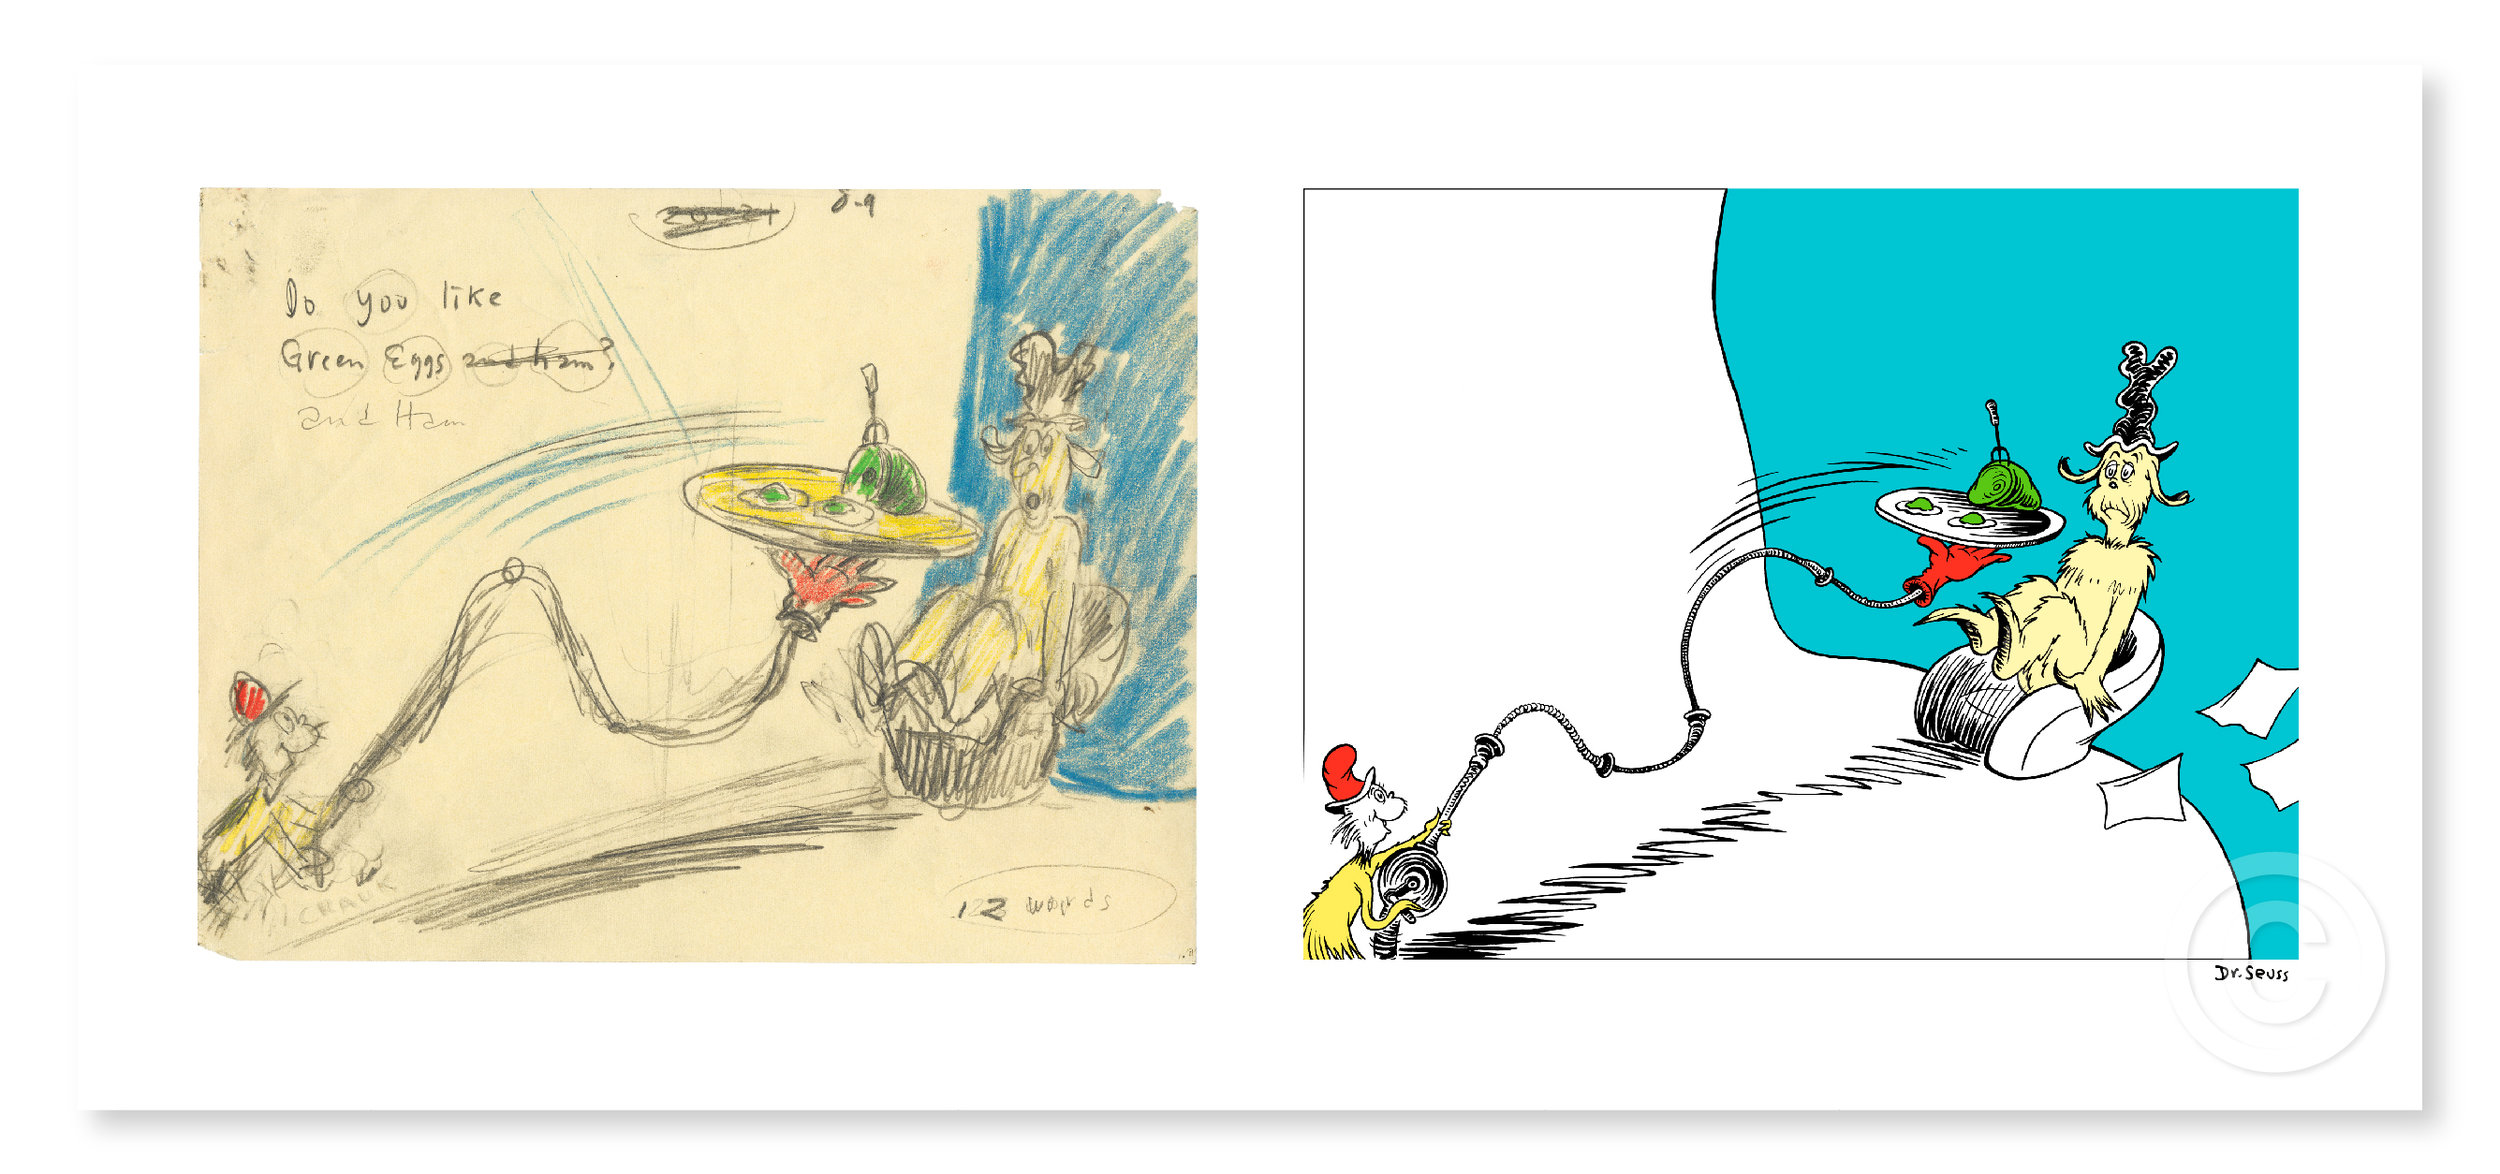 """Do You Like Green Eggs and Ham?  (Diptych)  Fine Art Pigment Print on Acid-Free Paper  Image Size: 10.75"""" x 14"""" (each), Paper Size: 14.25"""" x 32.5""""  Limited Edition of 850 Arabic Numbers, 99 Patrons' Collection, 155 Collaborators' Proofs, 5 Hors d'Commerce, and 2 Printer's Proofs"""